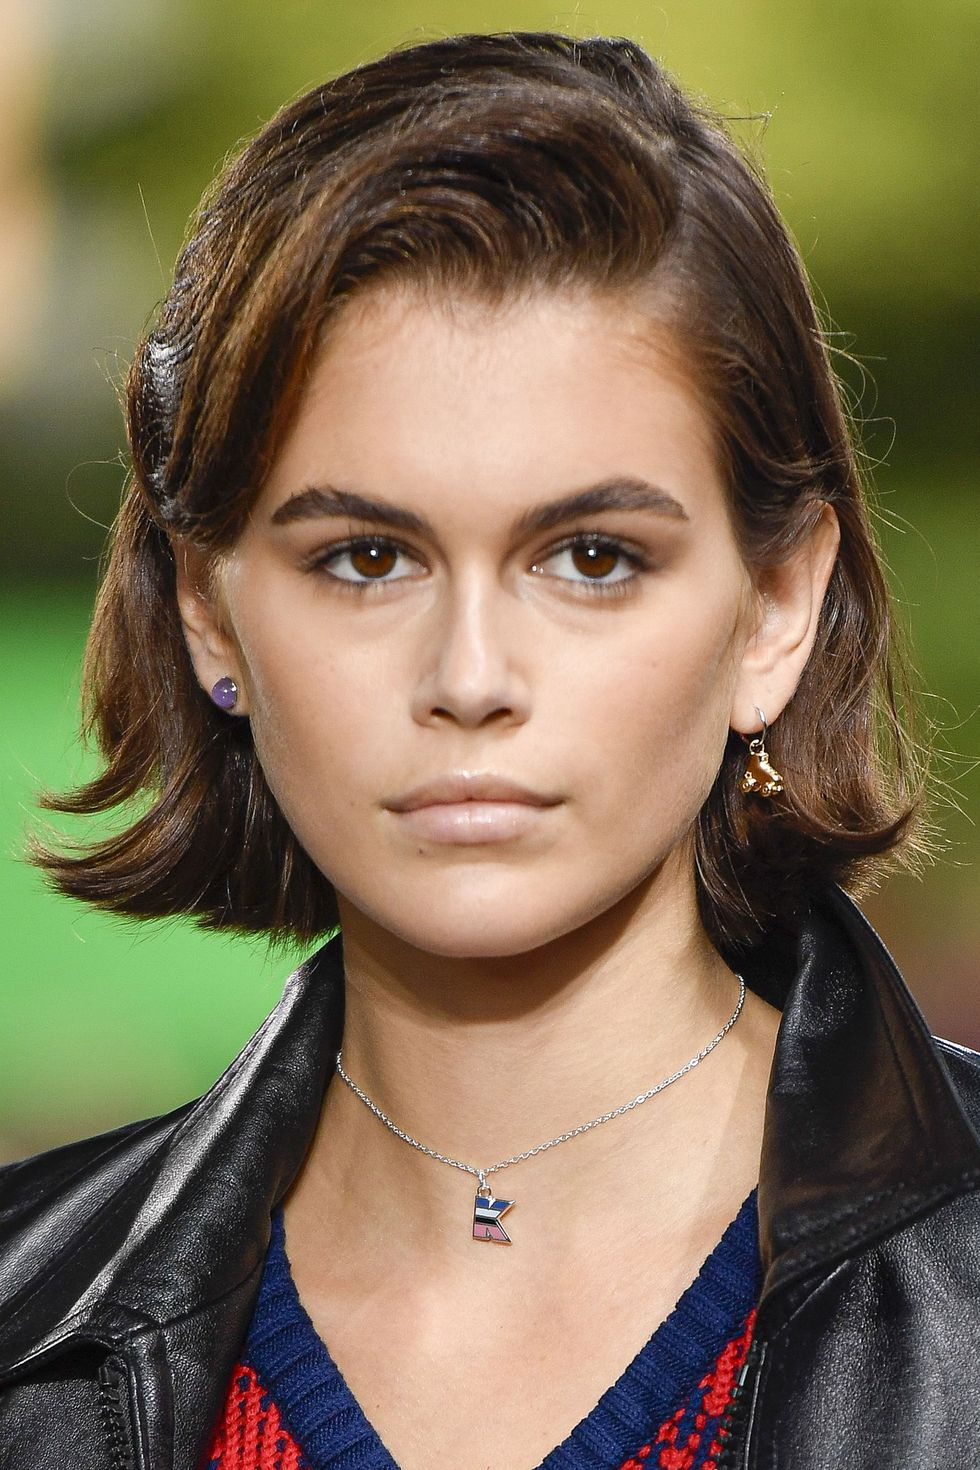 6 spring/summer 2020 hair trends to try now   Hair trends, Summer hairstyles, Spring hairstyles